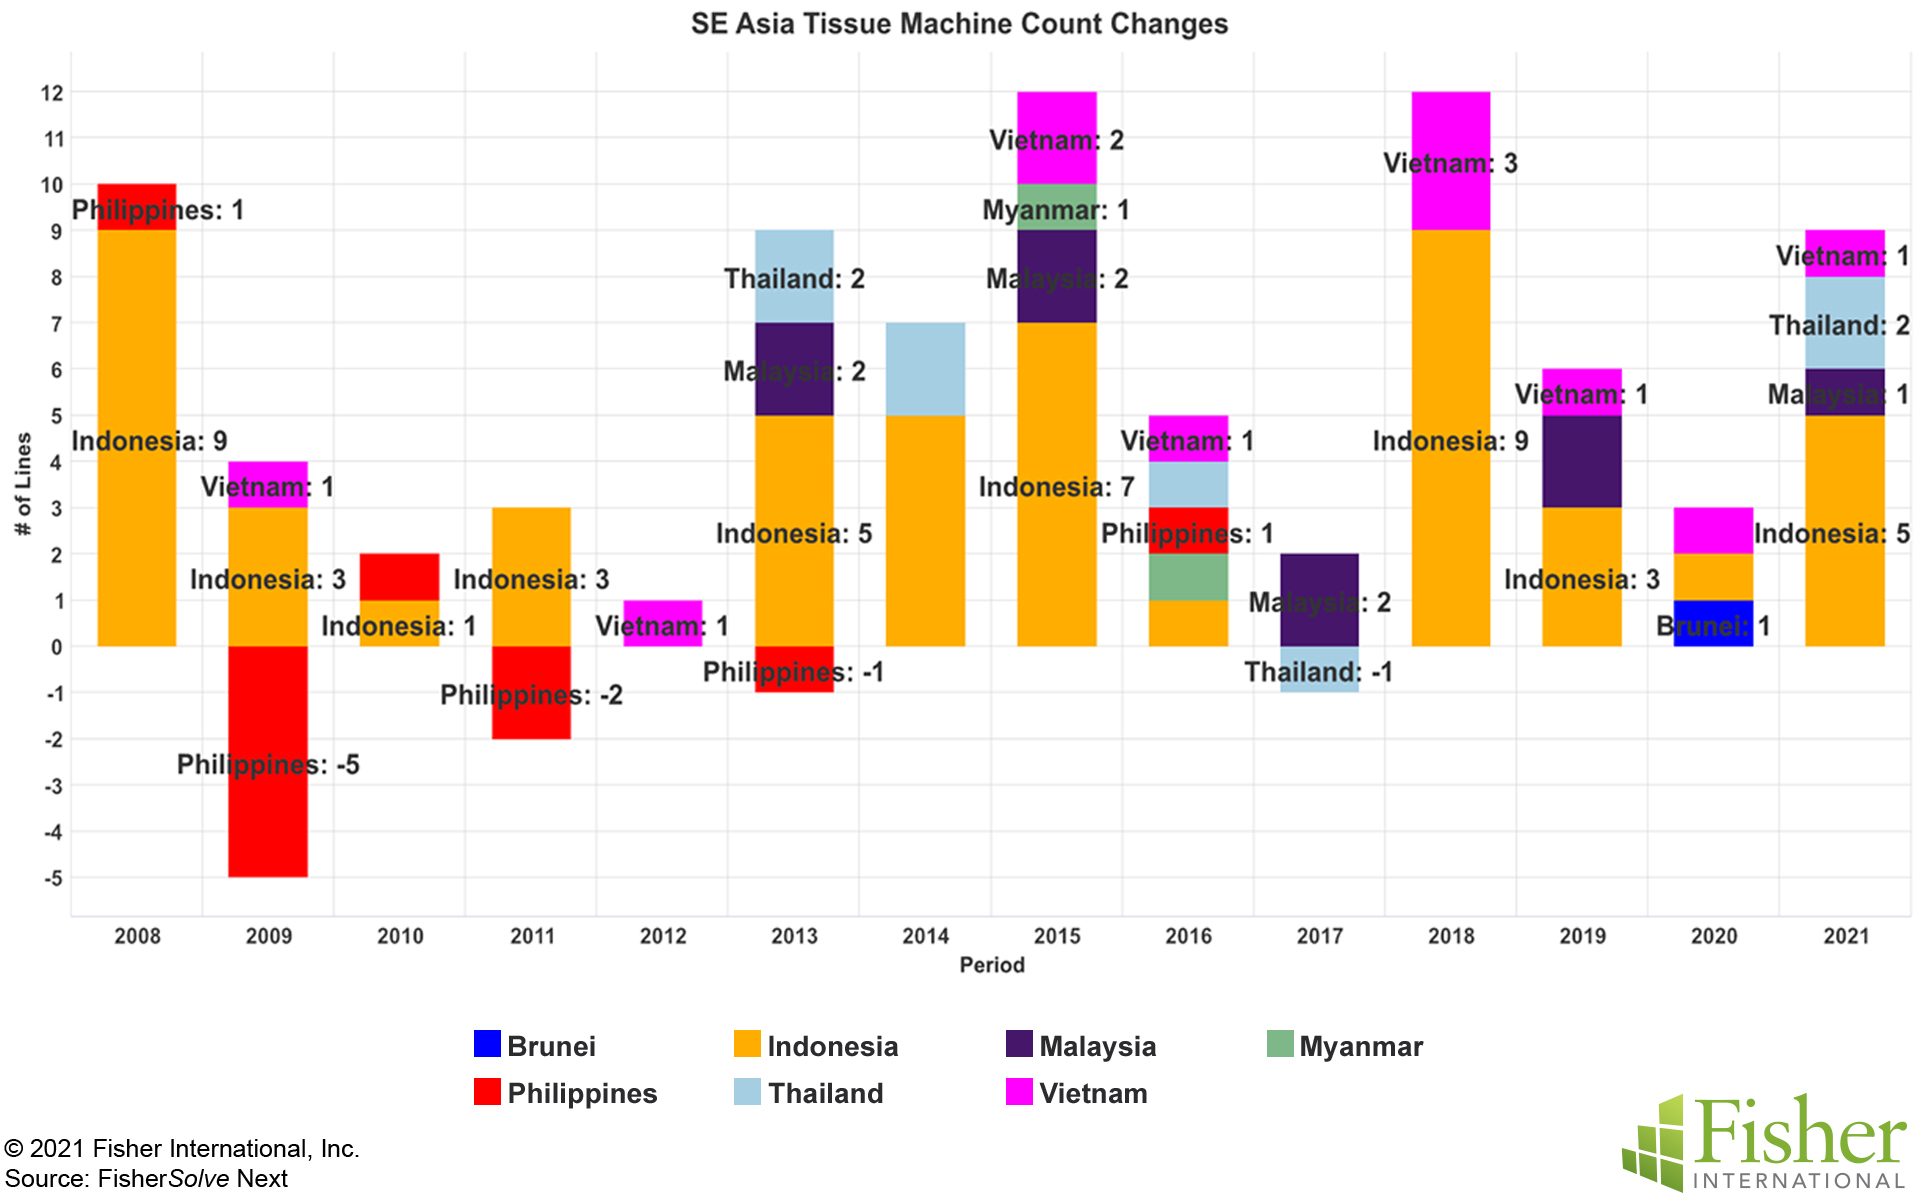 Fig 11 SE Asia Tissue Machine Count Changes